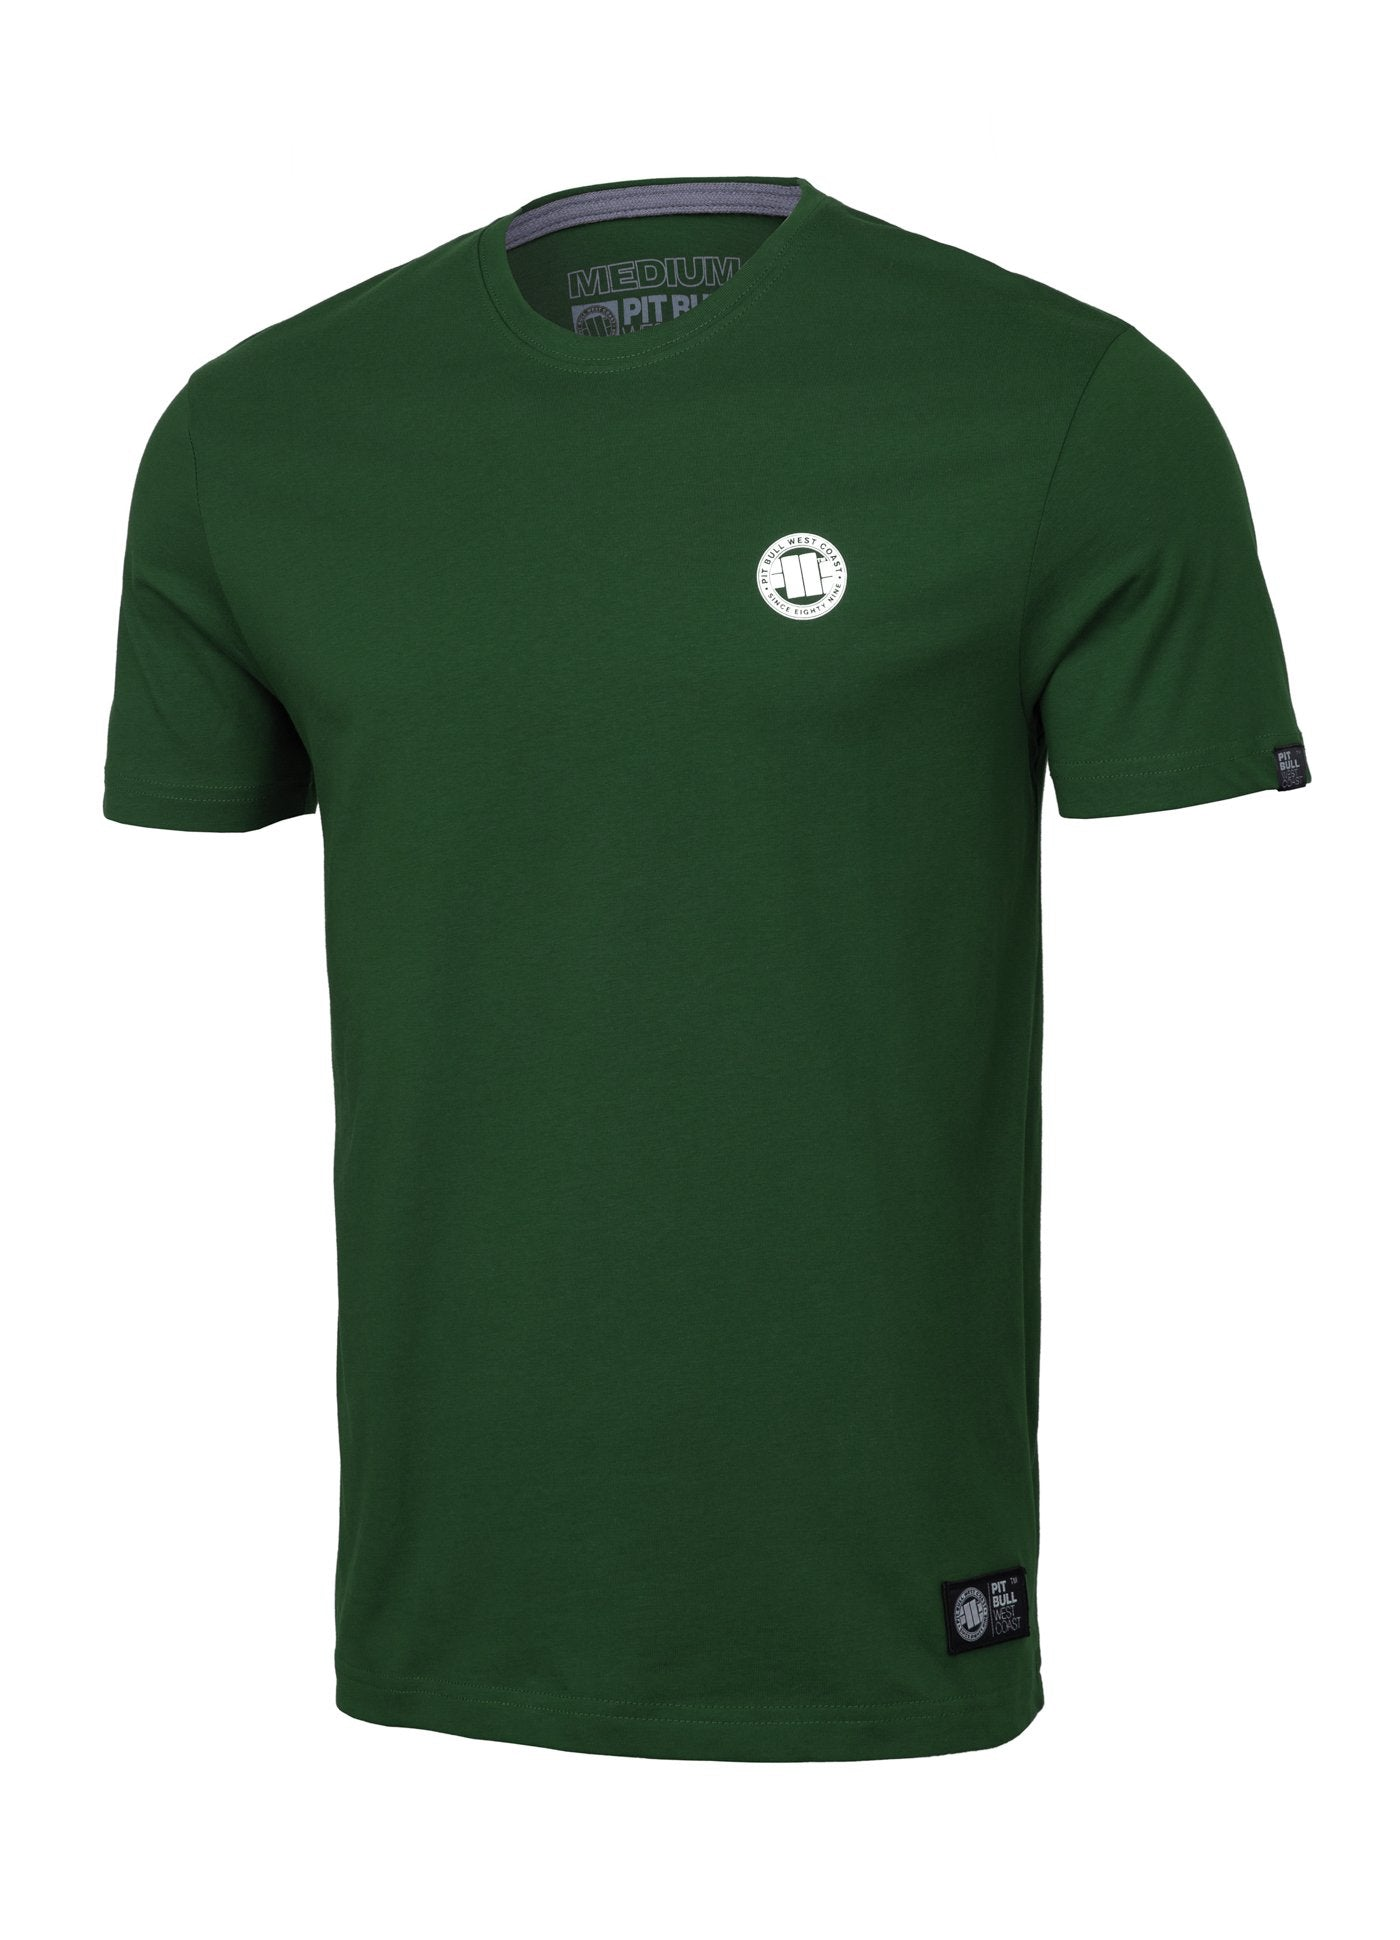 T-Shirt SMALL LOGO Dark Green - Pitbull West Coast U.S.A.